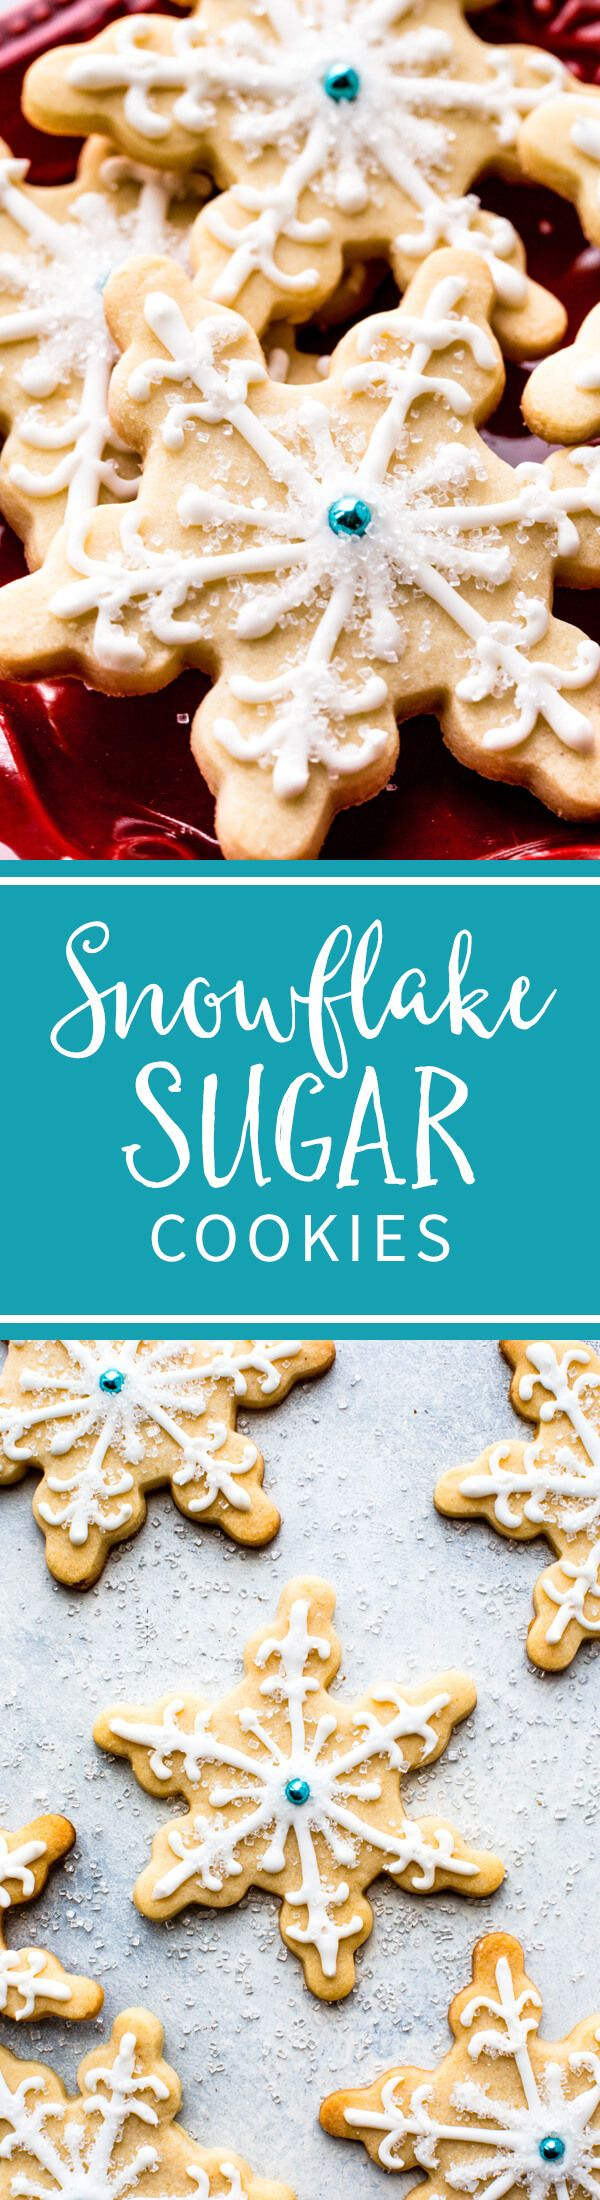 Learn how to make beautiful and easy snowman and snowflake sugar cookies with royal icing! Christmas cookies recipe on sallysbakingaddiction.com